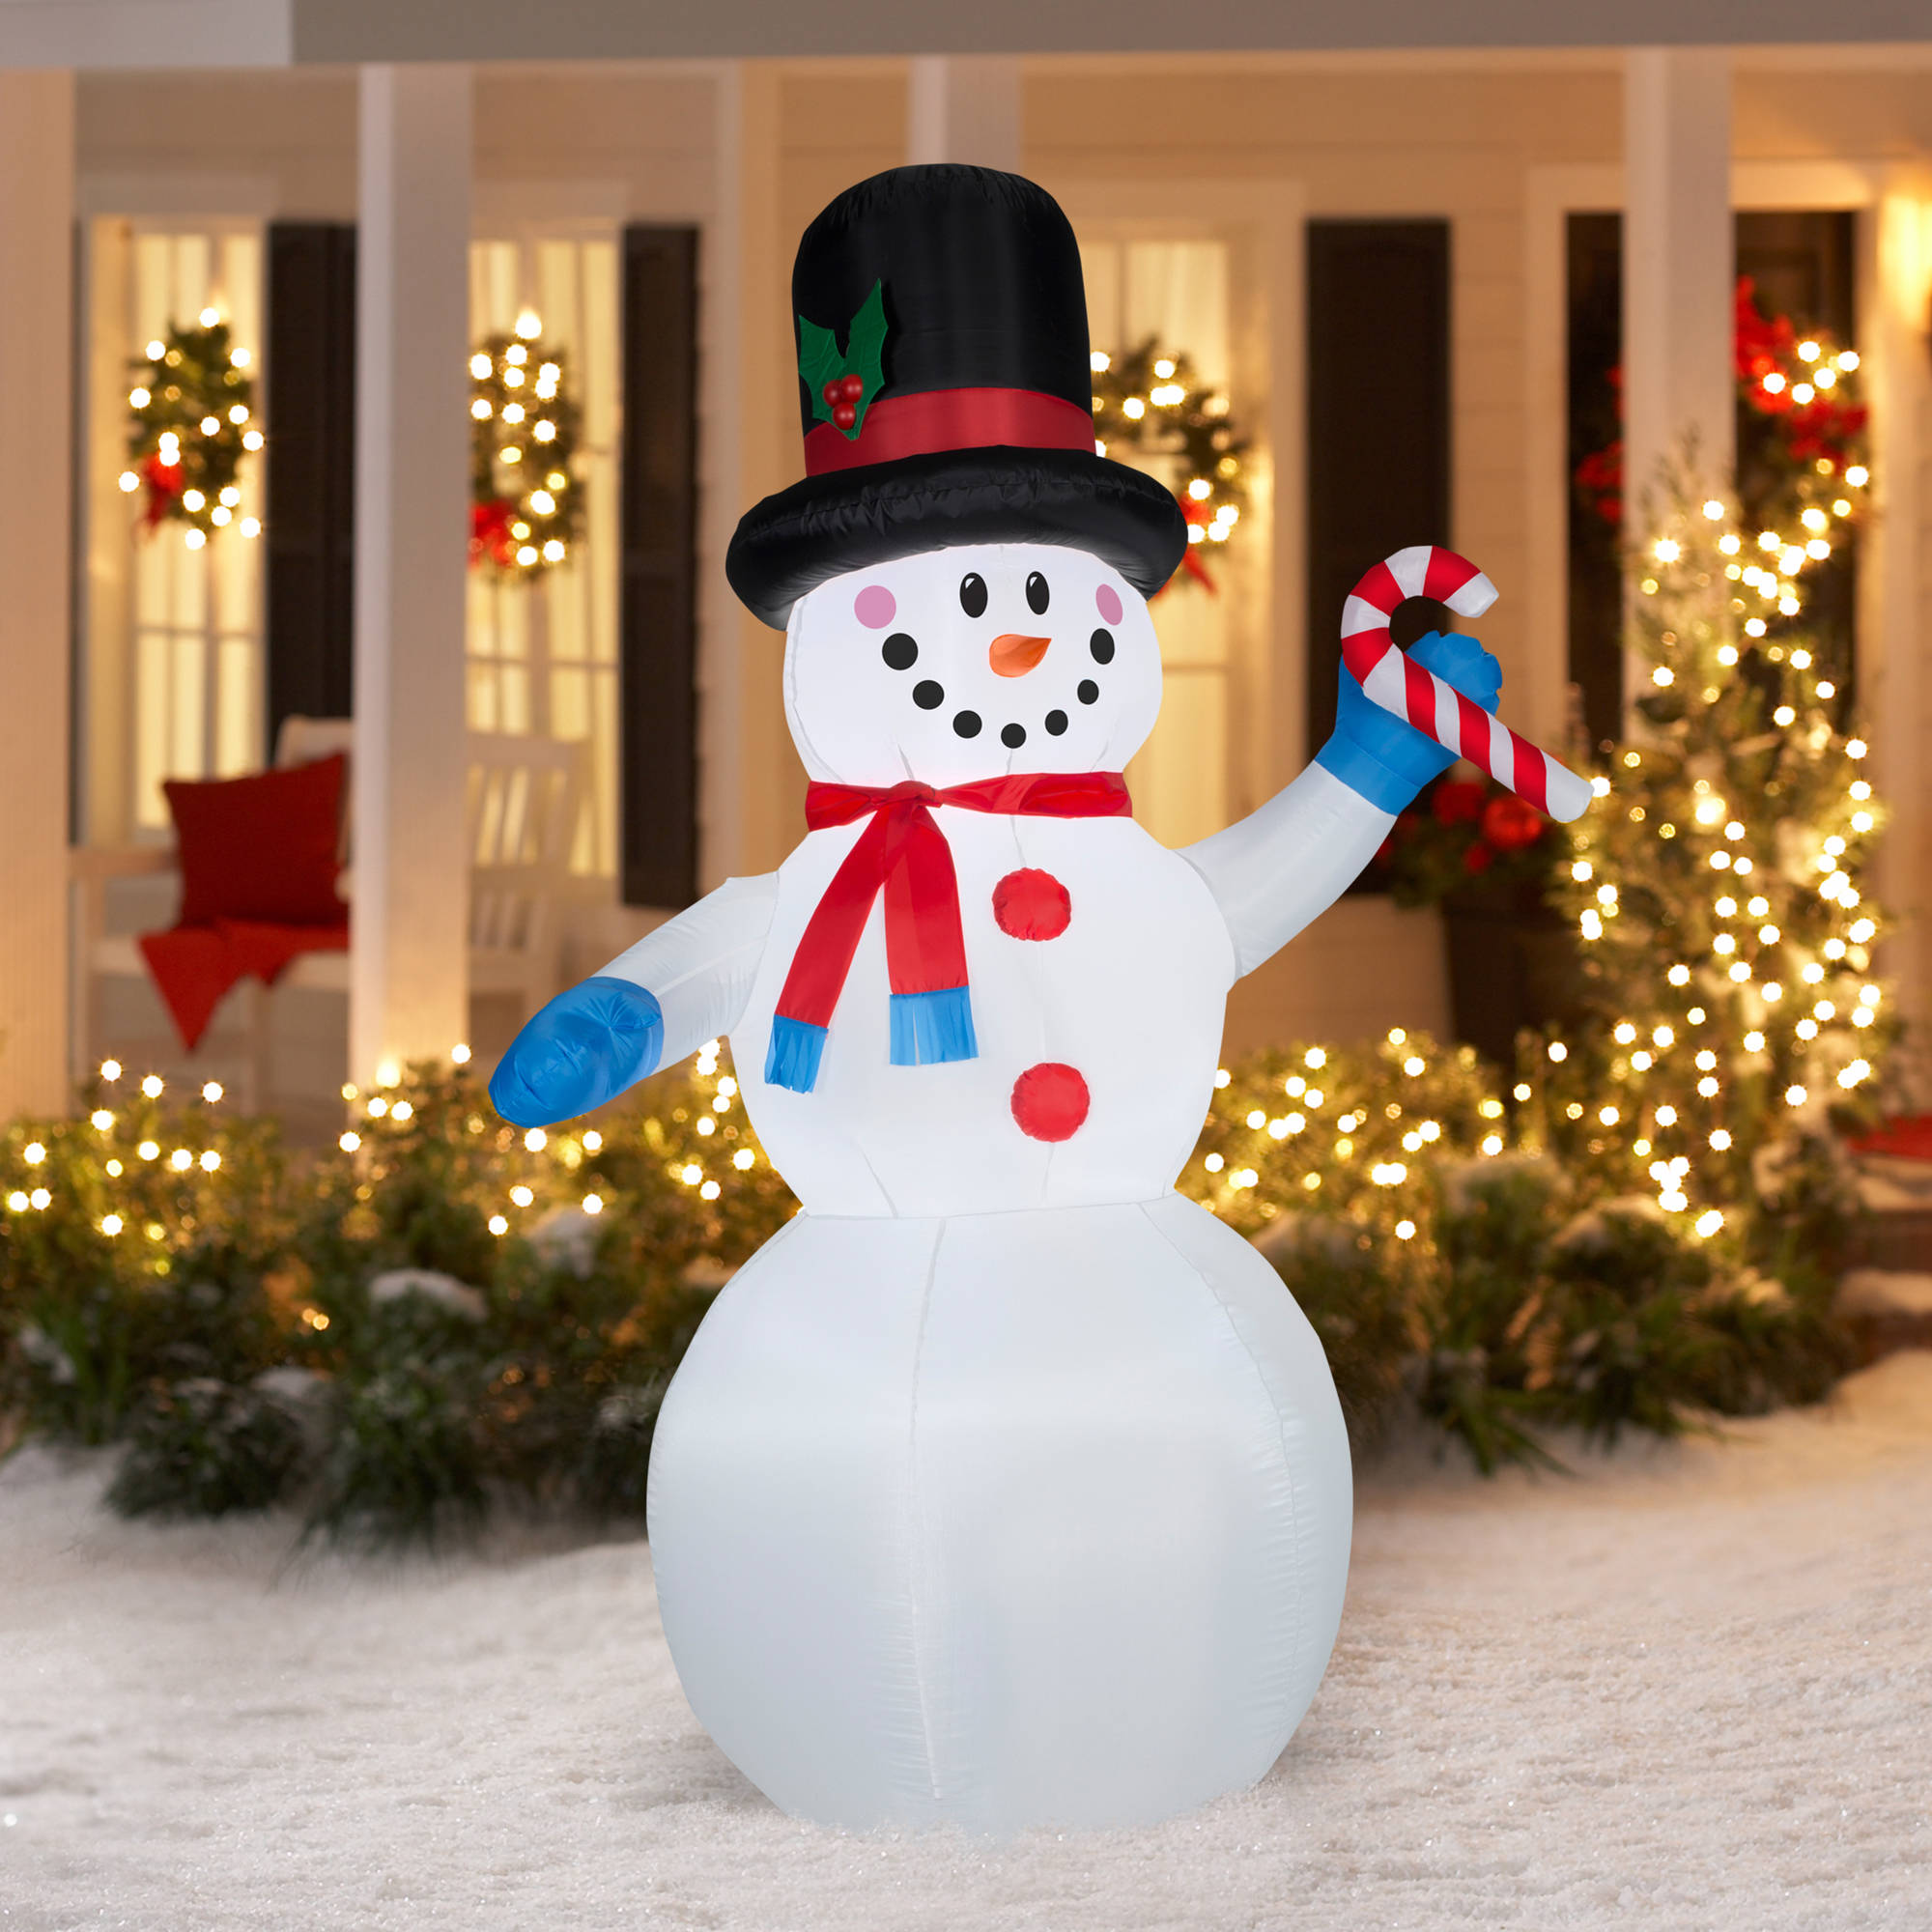 gemmy airblown christmas inflatables 7 festive snowman walmartcom - Walmart Inflatable Christmas Decorations